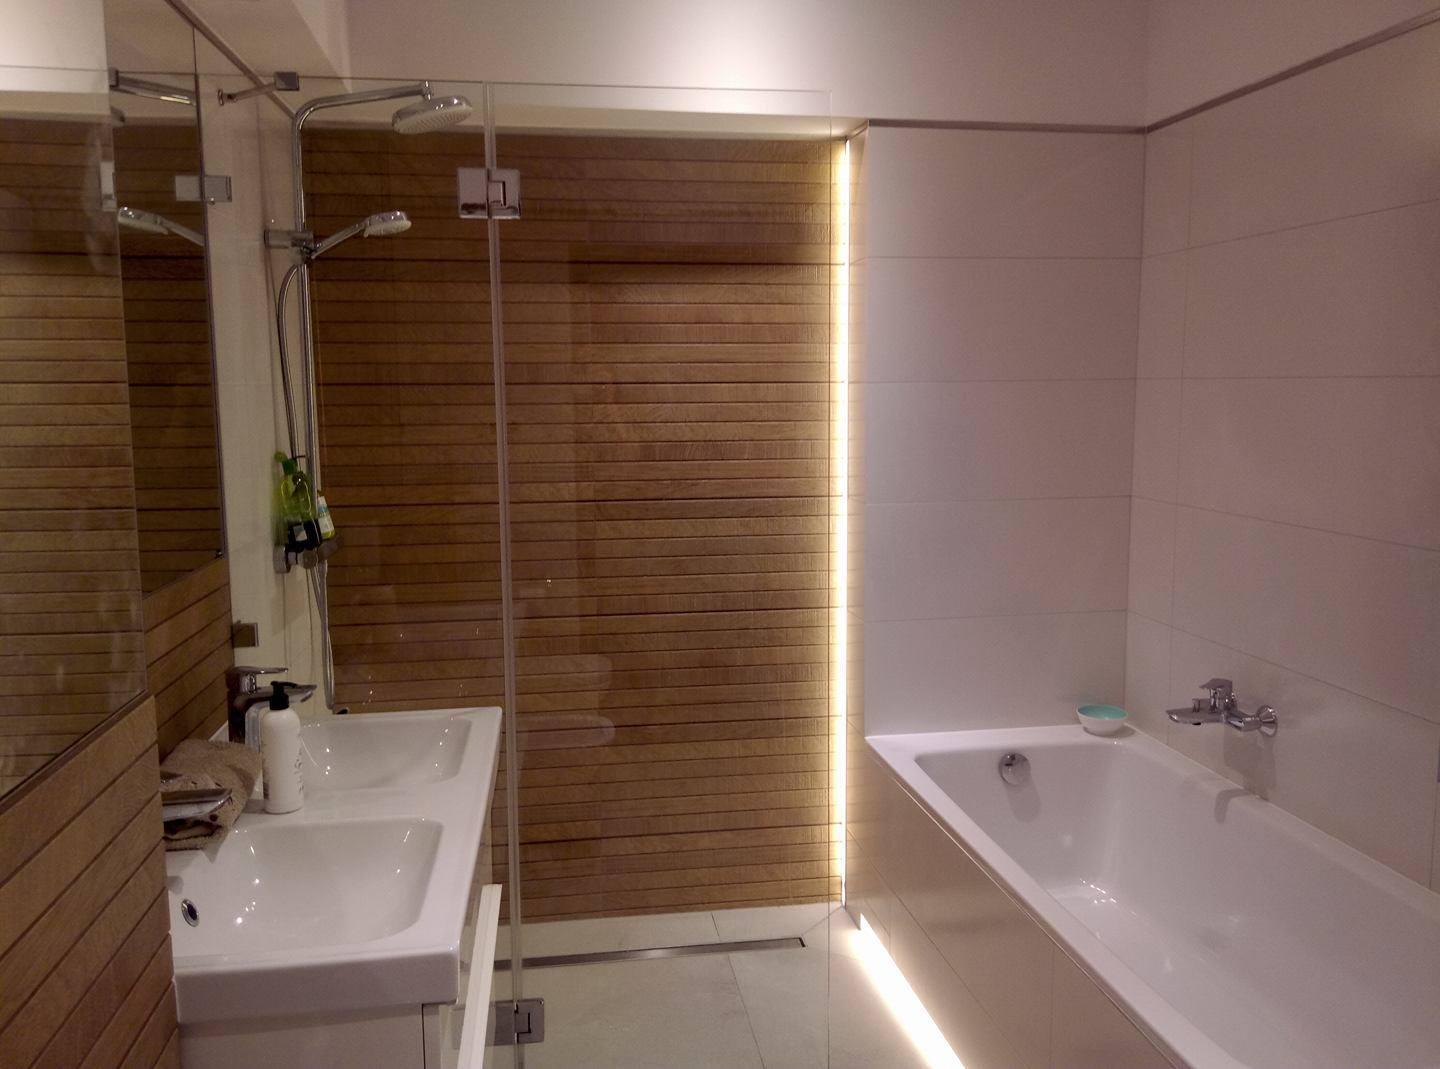 Bath in a private apartment Surface: 7.2 m2